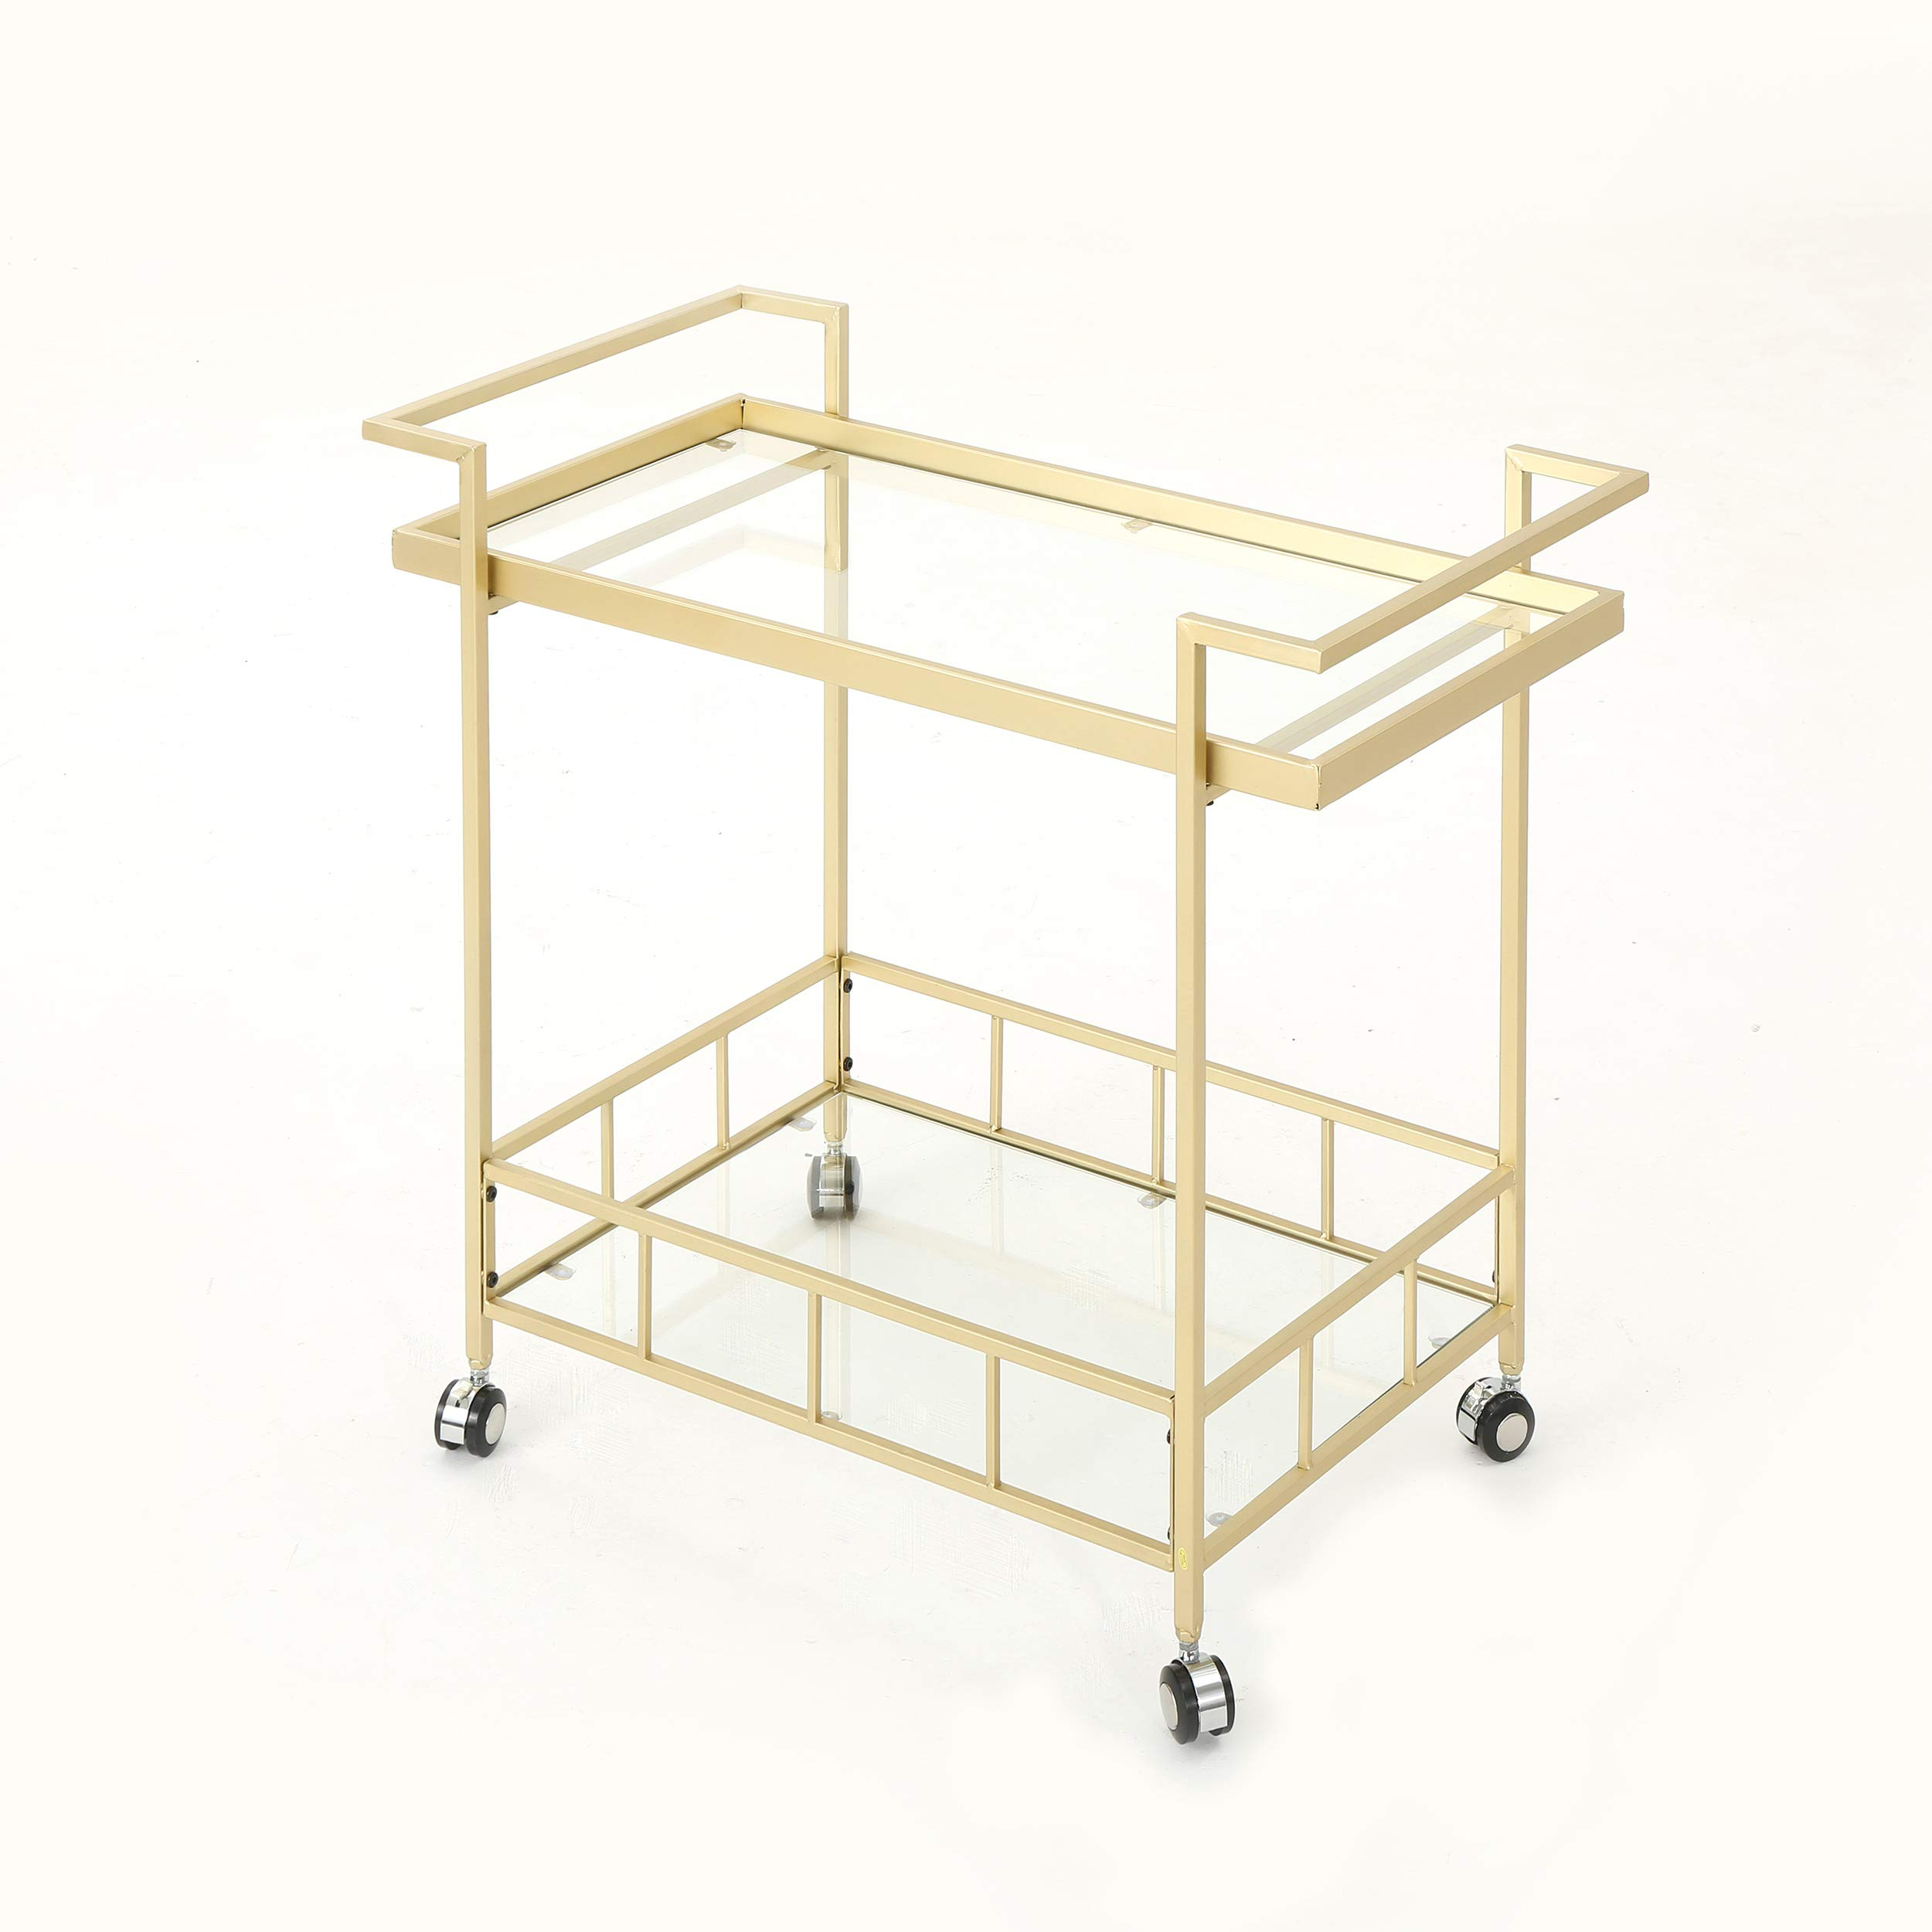 Christopher Knight Home Amaya Indoor Industrial Iron and Glass Bar Cart, Gold, by Christopher Knight Home